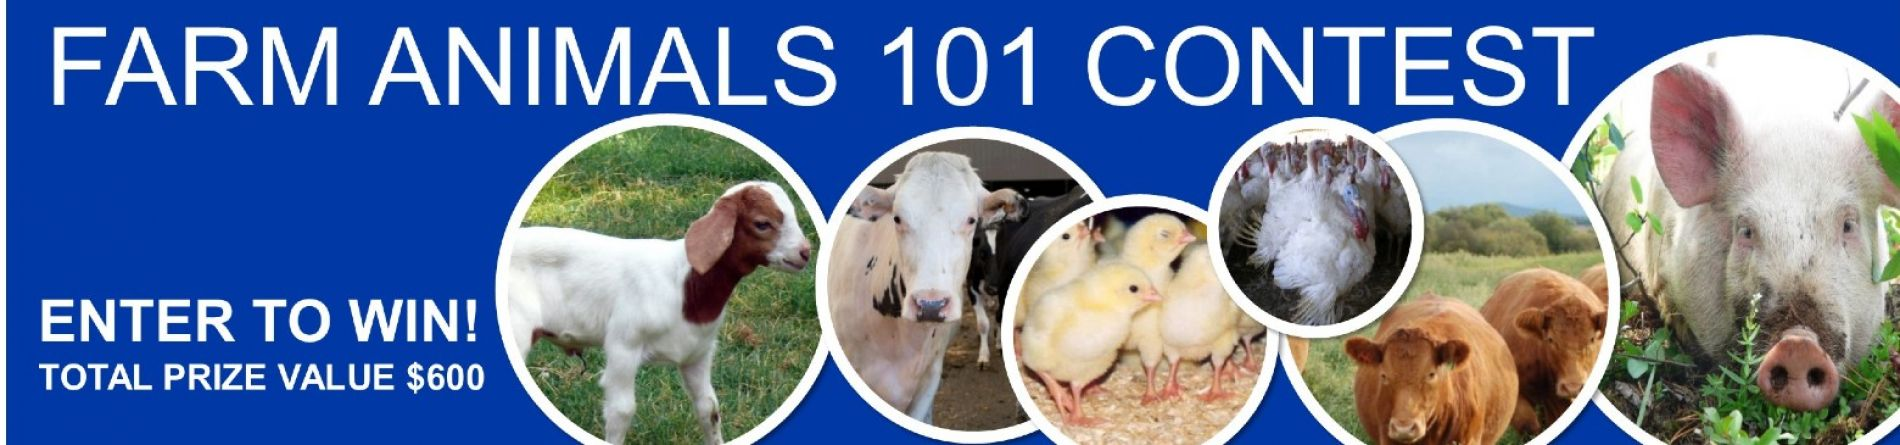 Farm Animals 101 Contest